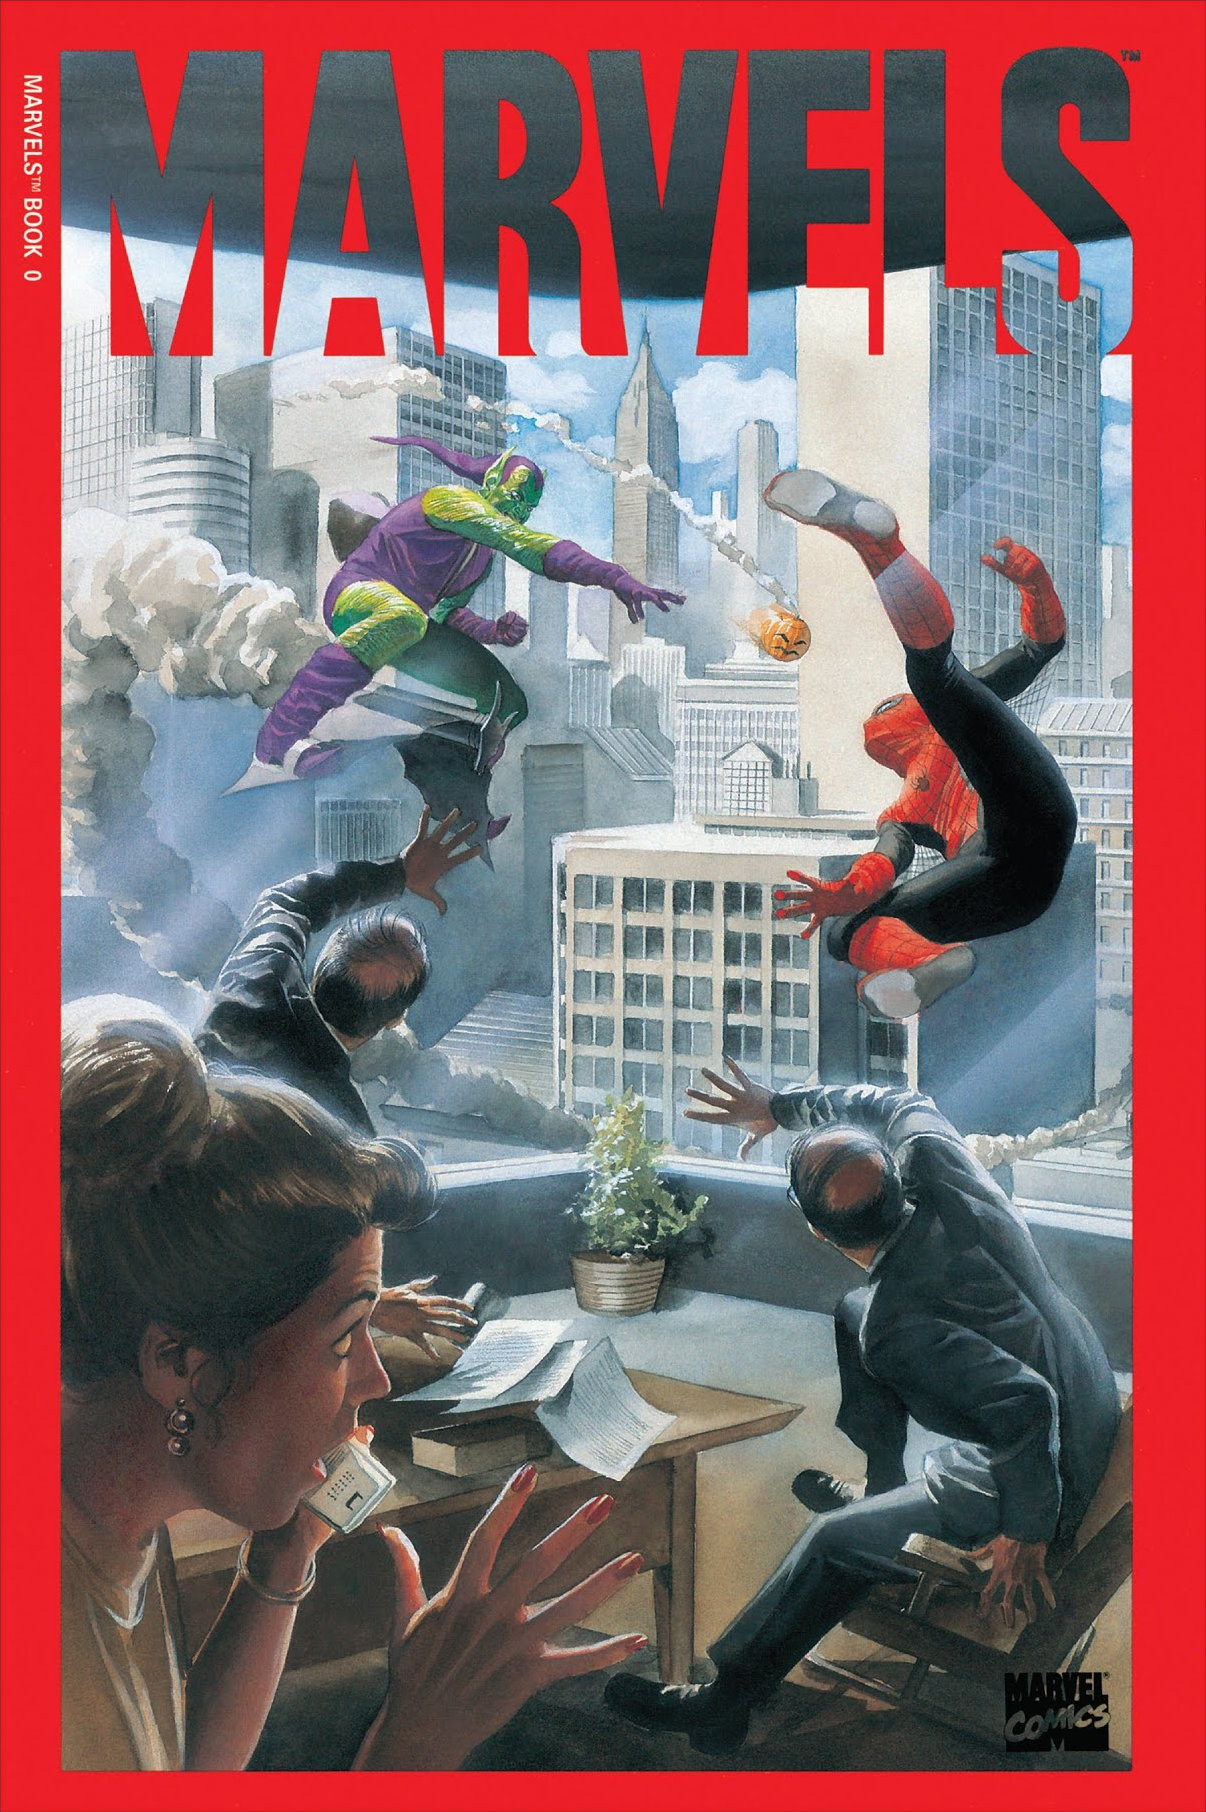 Marvels (1994) #0, cover by Alex Ross.